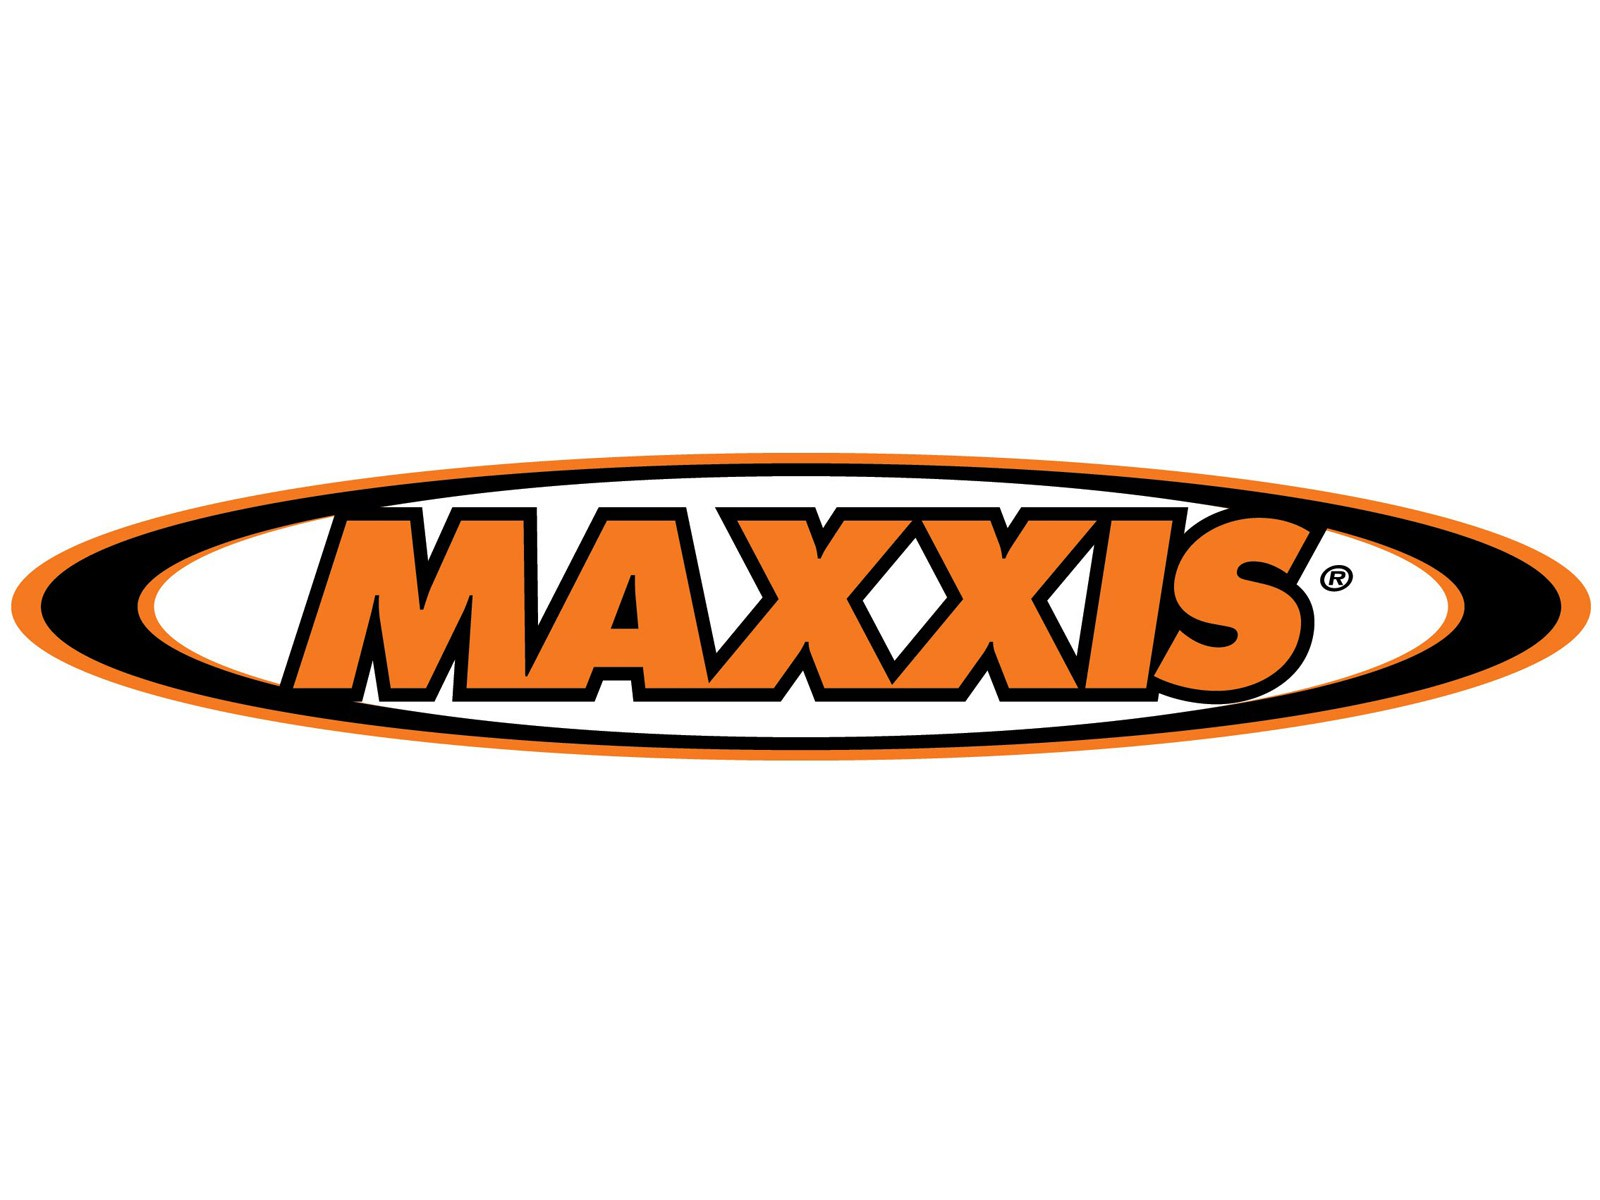 Покрышки и камеры Maxxis